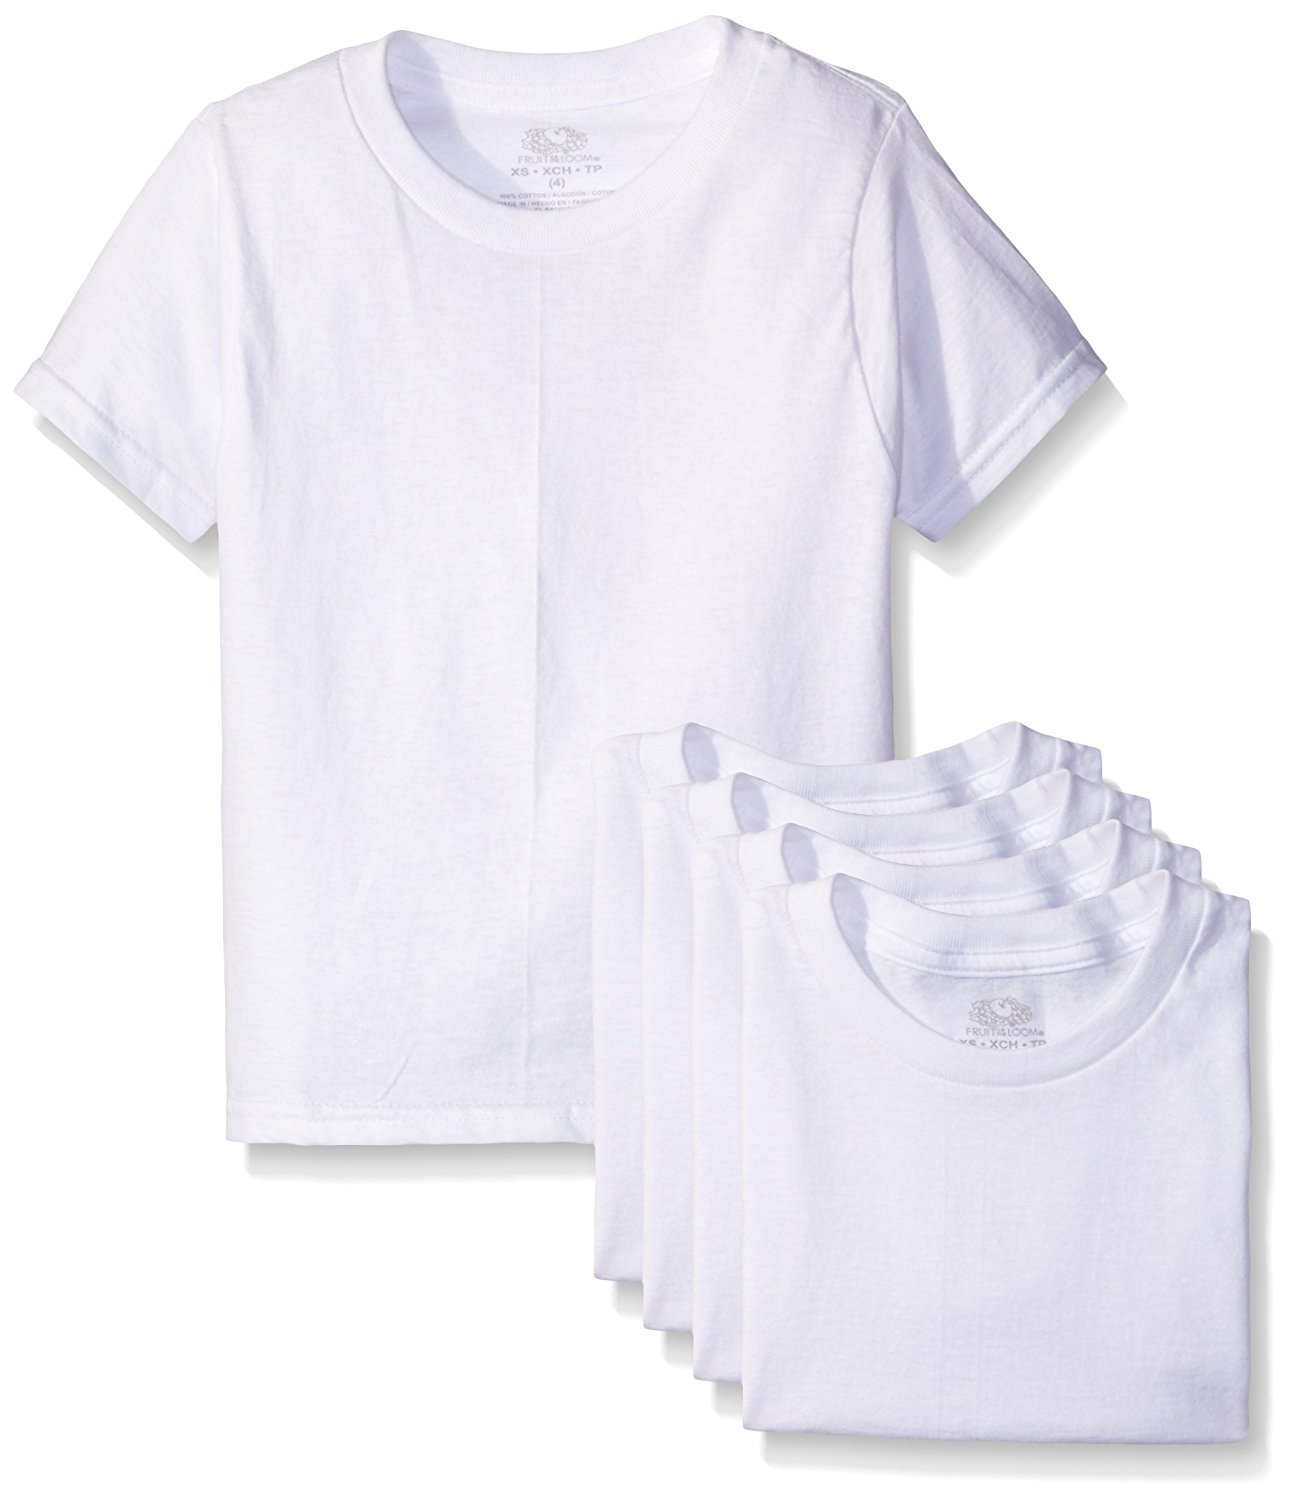 Fruit The Loom Little Boys' Crew Tee Five-Pack (Pack of 5) (4T/5T ( 36-38'') lbs, White)